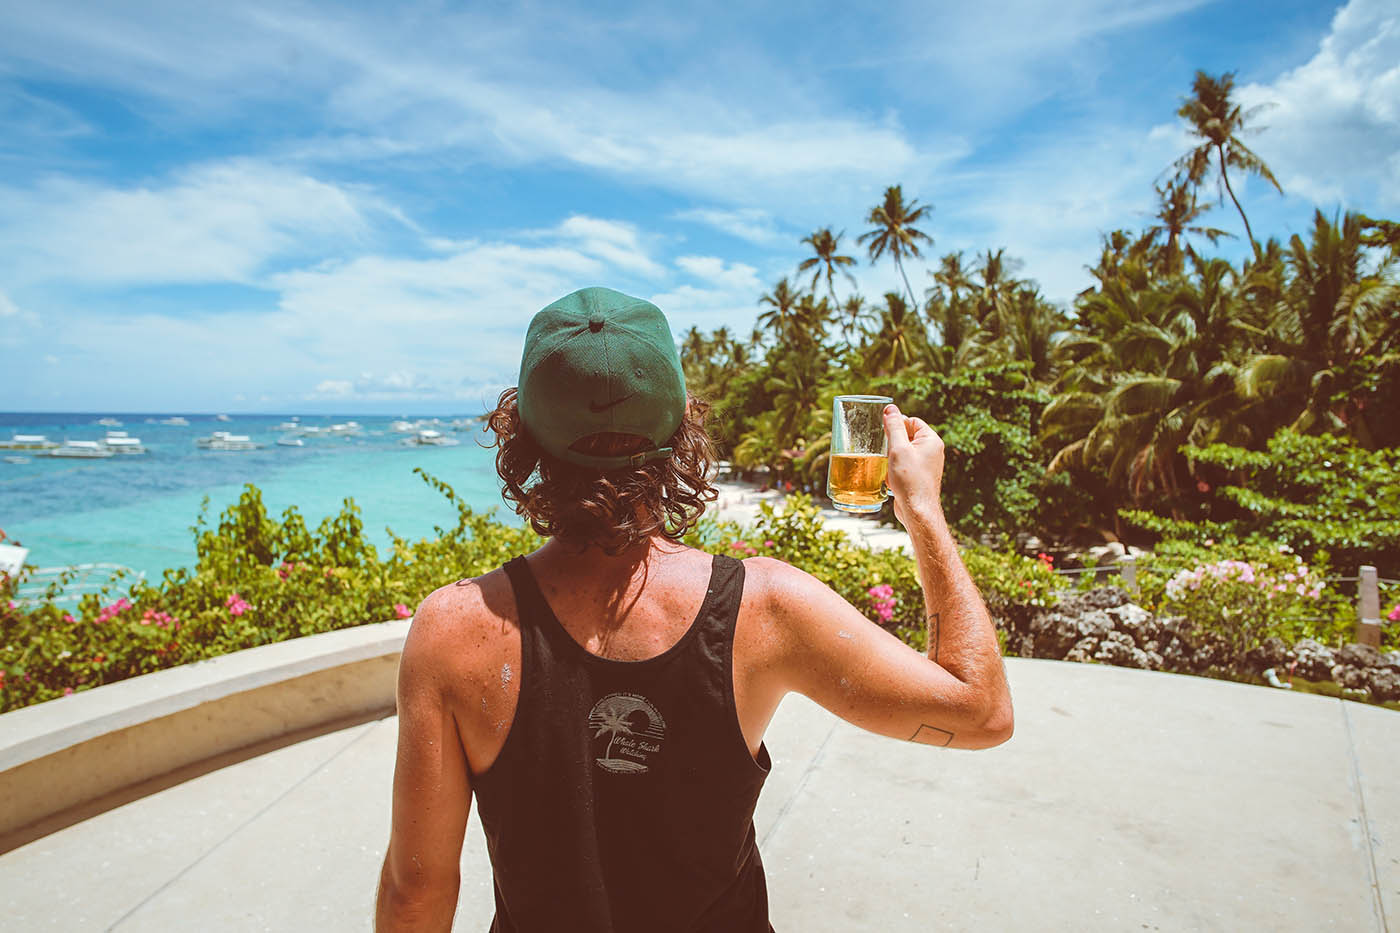 Top Backpacker Souvenirs - what to collect while traveling around the world. T-shirts and singlets make great souvenirs for backpackers.